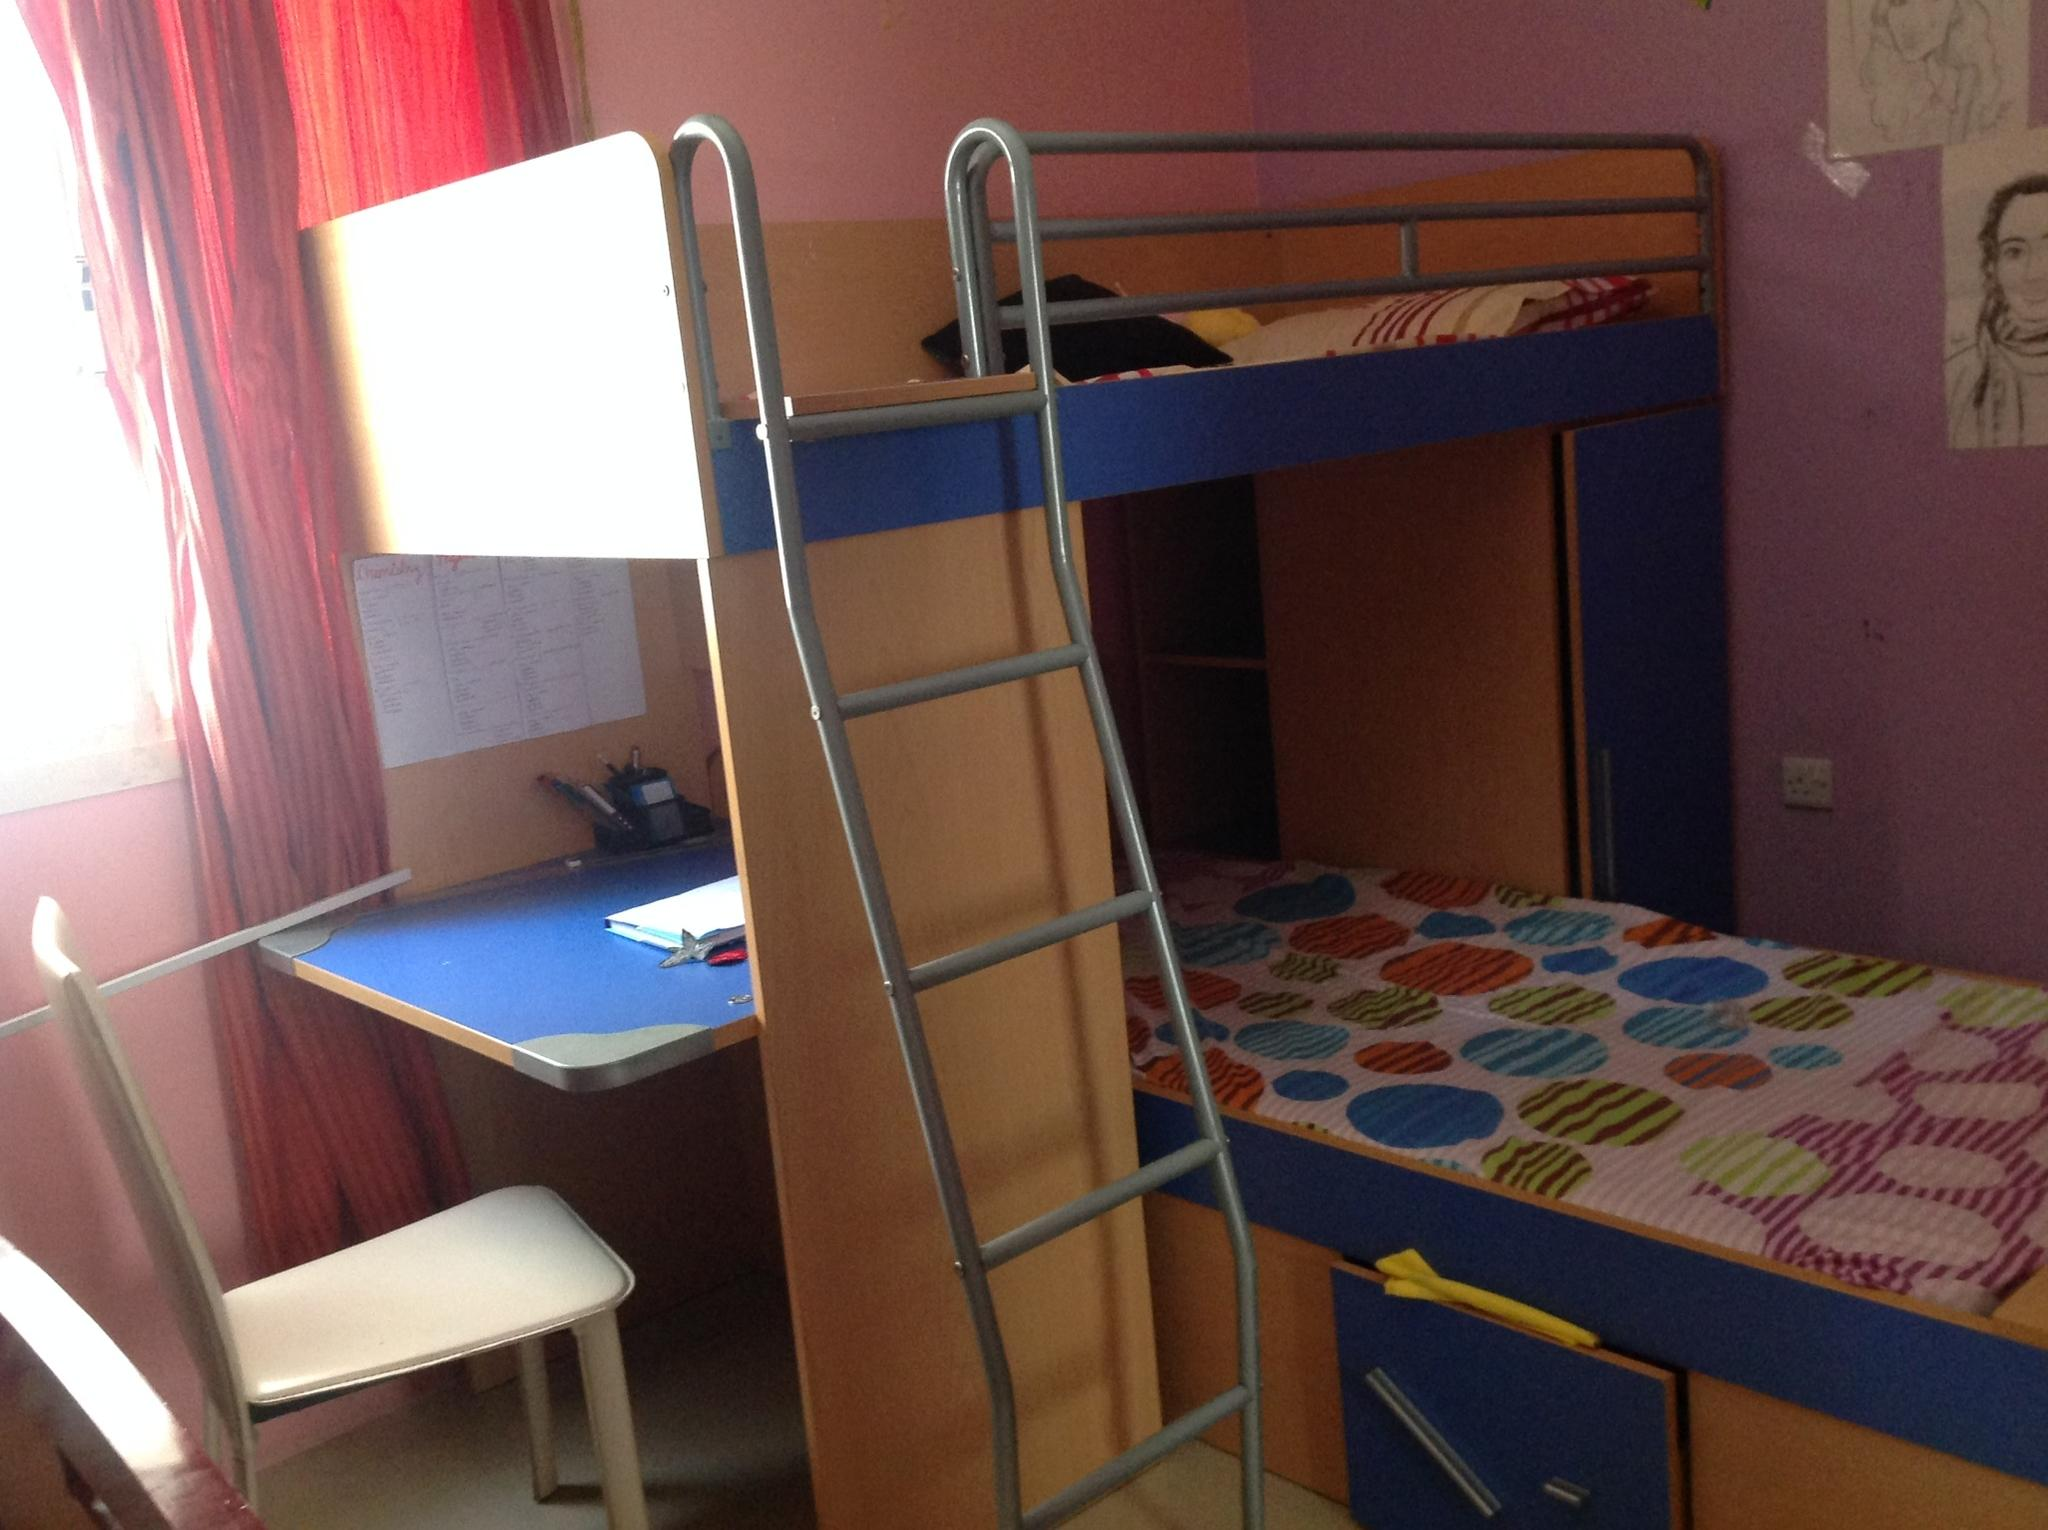 New Bunk bed for kids - Homecenter - Rarely used